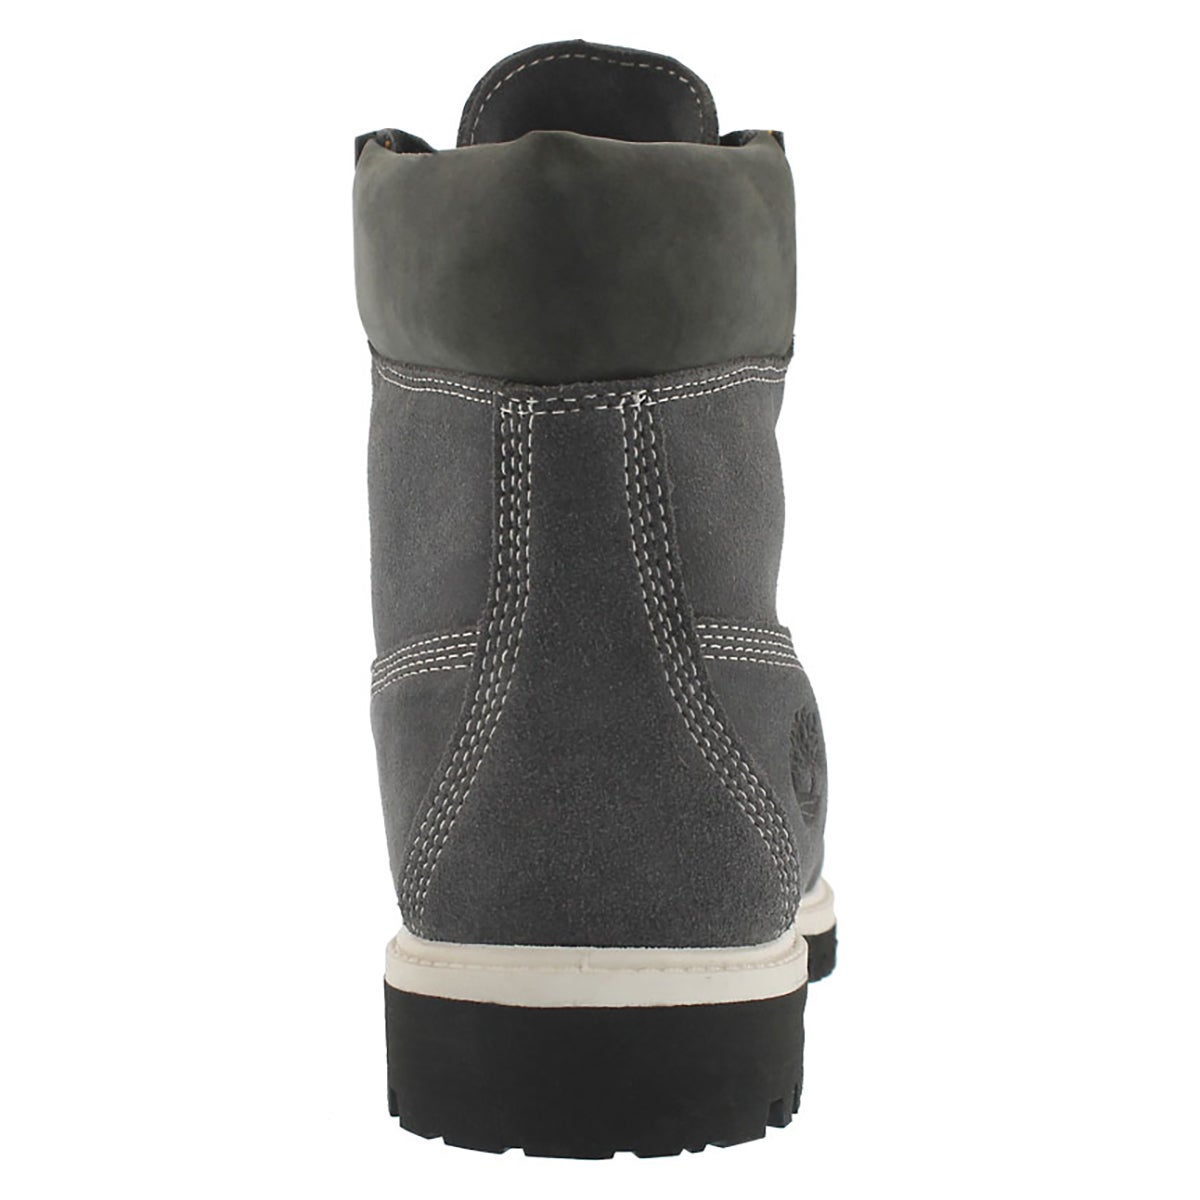 Mns Icon dk grey suede wtpf ankle boot